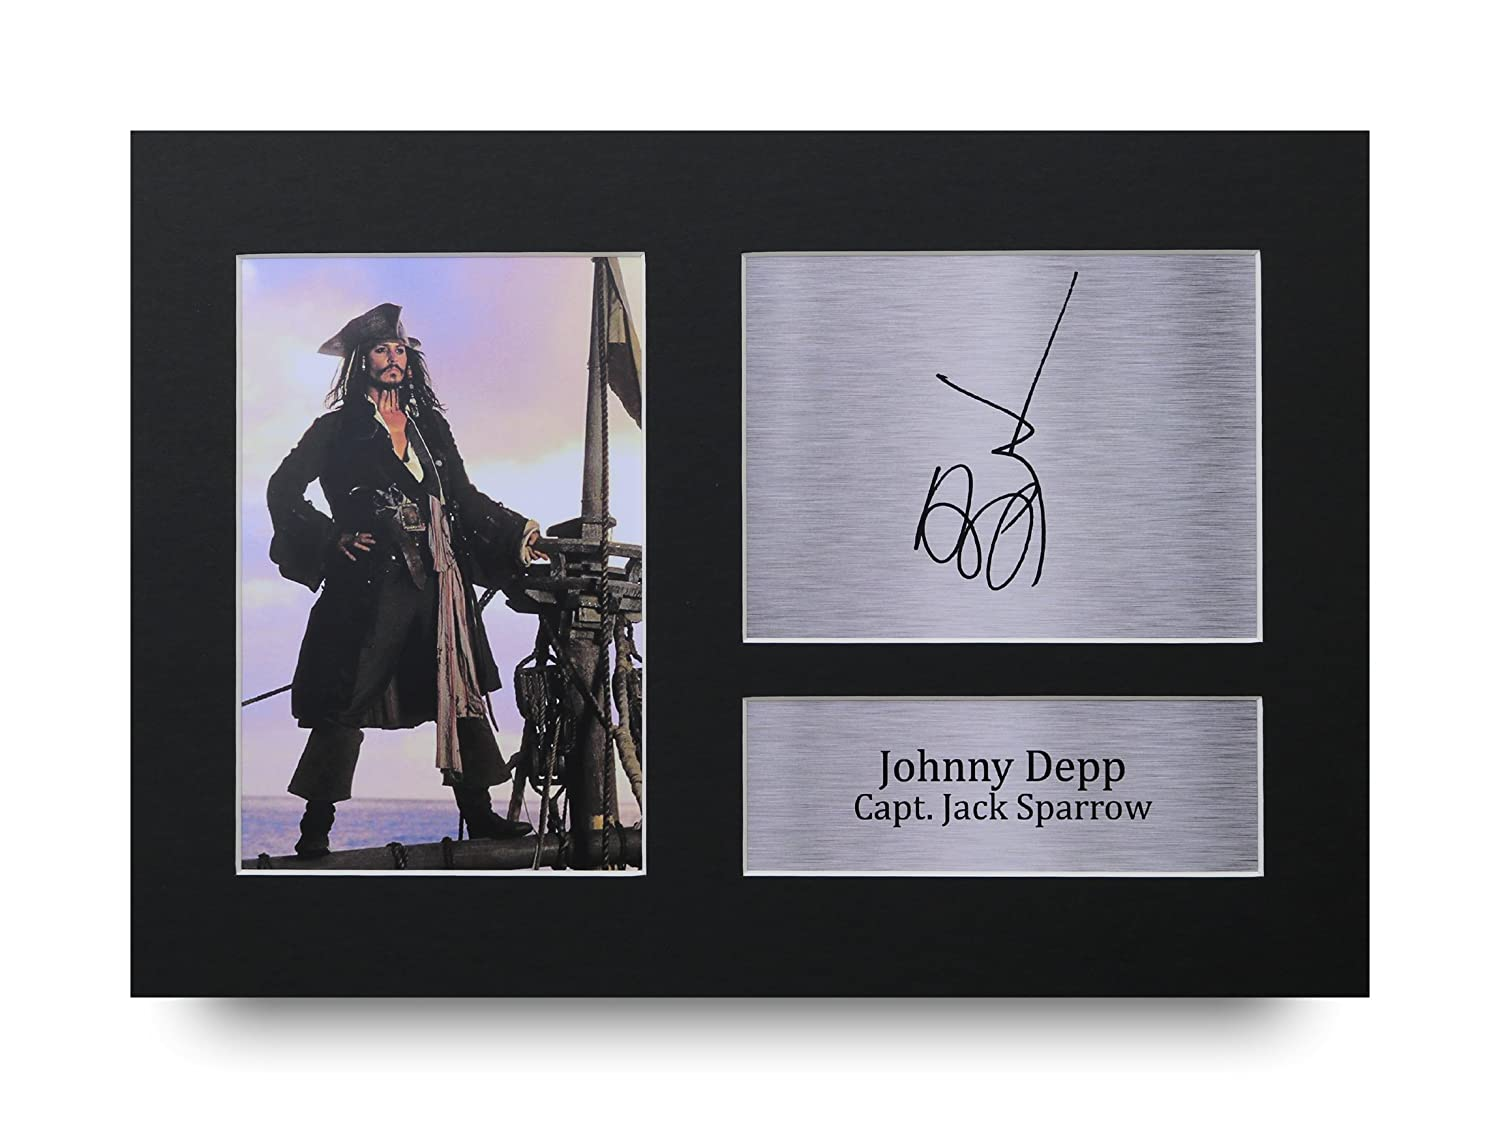 Johnny Depp firmato A4 stampato Autograph pirati dei Caraibi stampa foto immagine display – Great gift idea HWC Trading